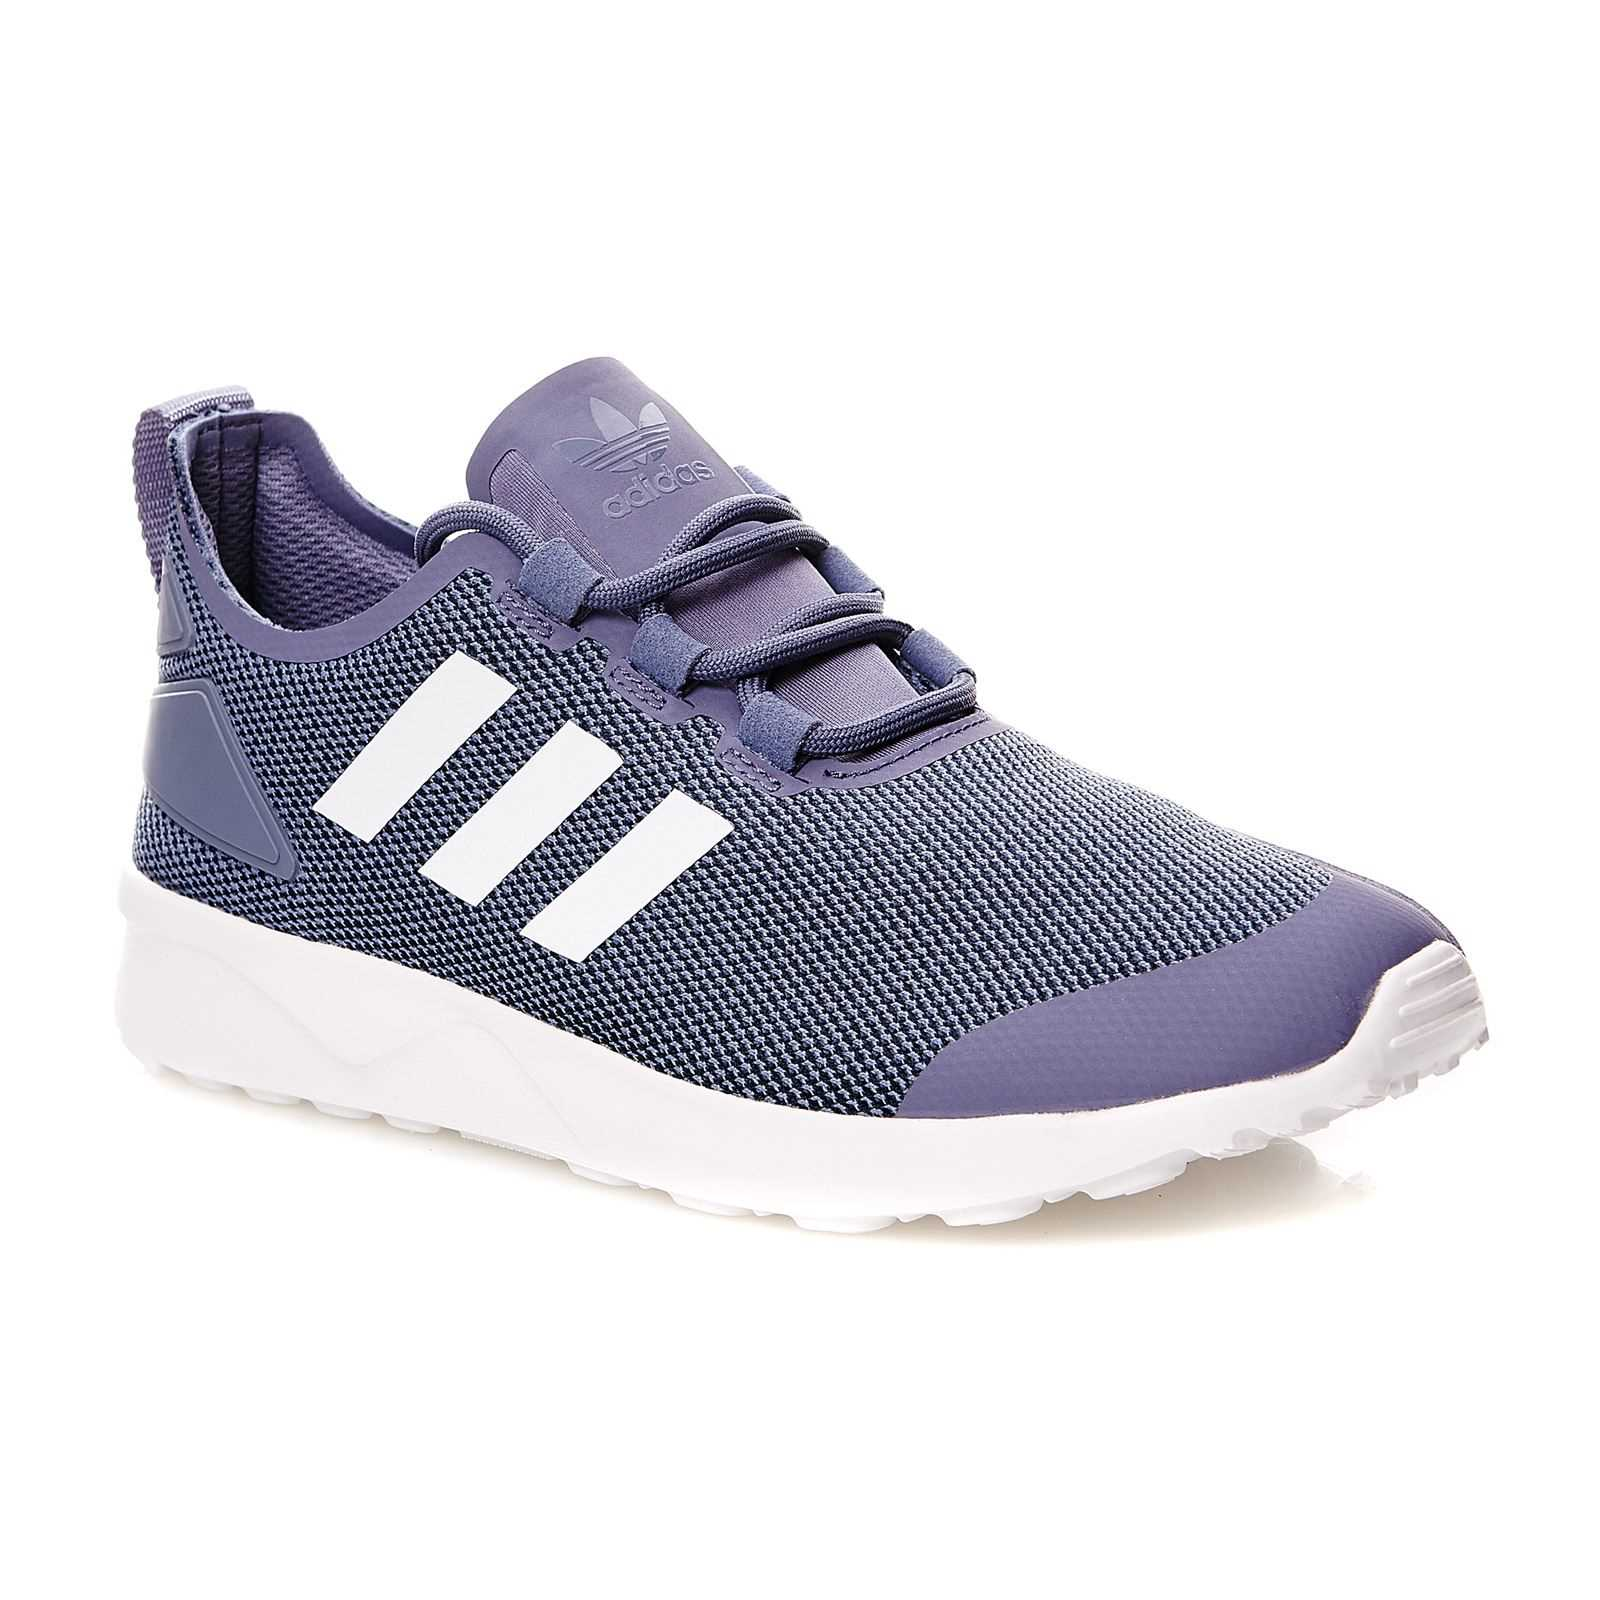 sports shoes 7e5bf be7aa ADIDAS ORIGINALS Zx Flux Adv Verve W - Scarpe da tennis, sneakers - malva